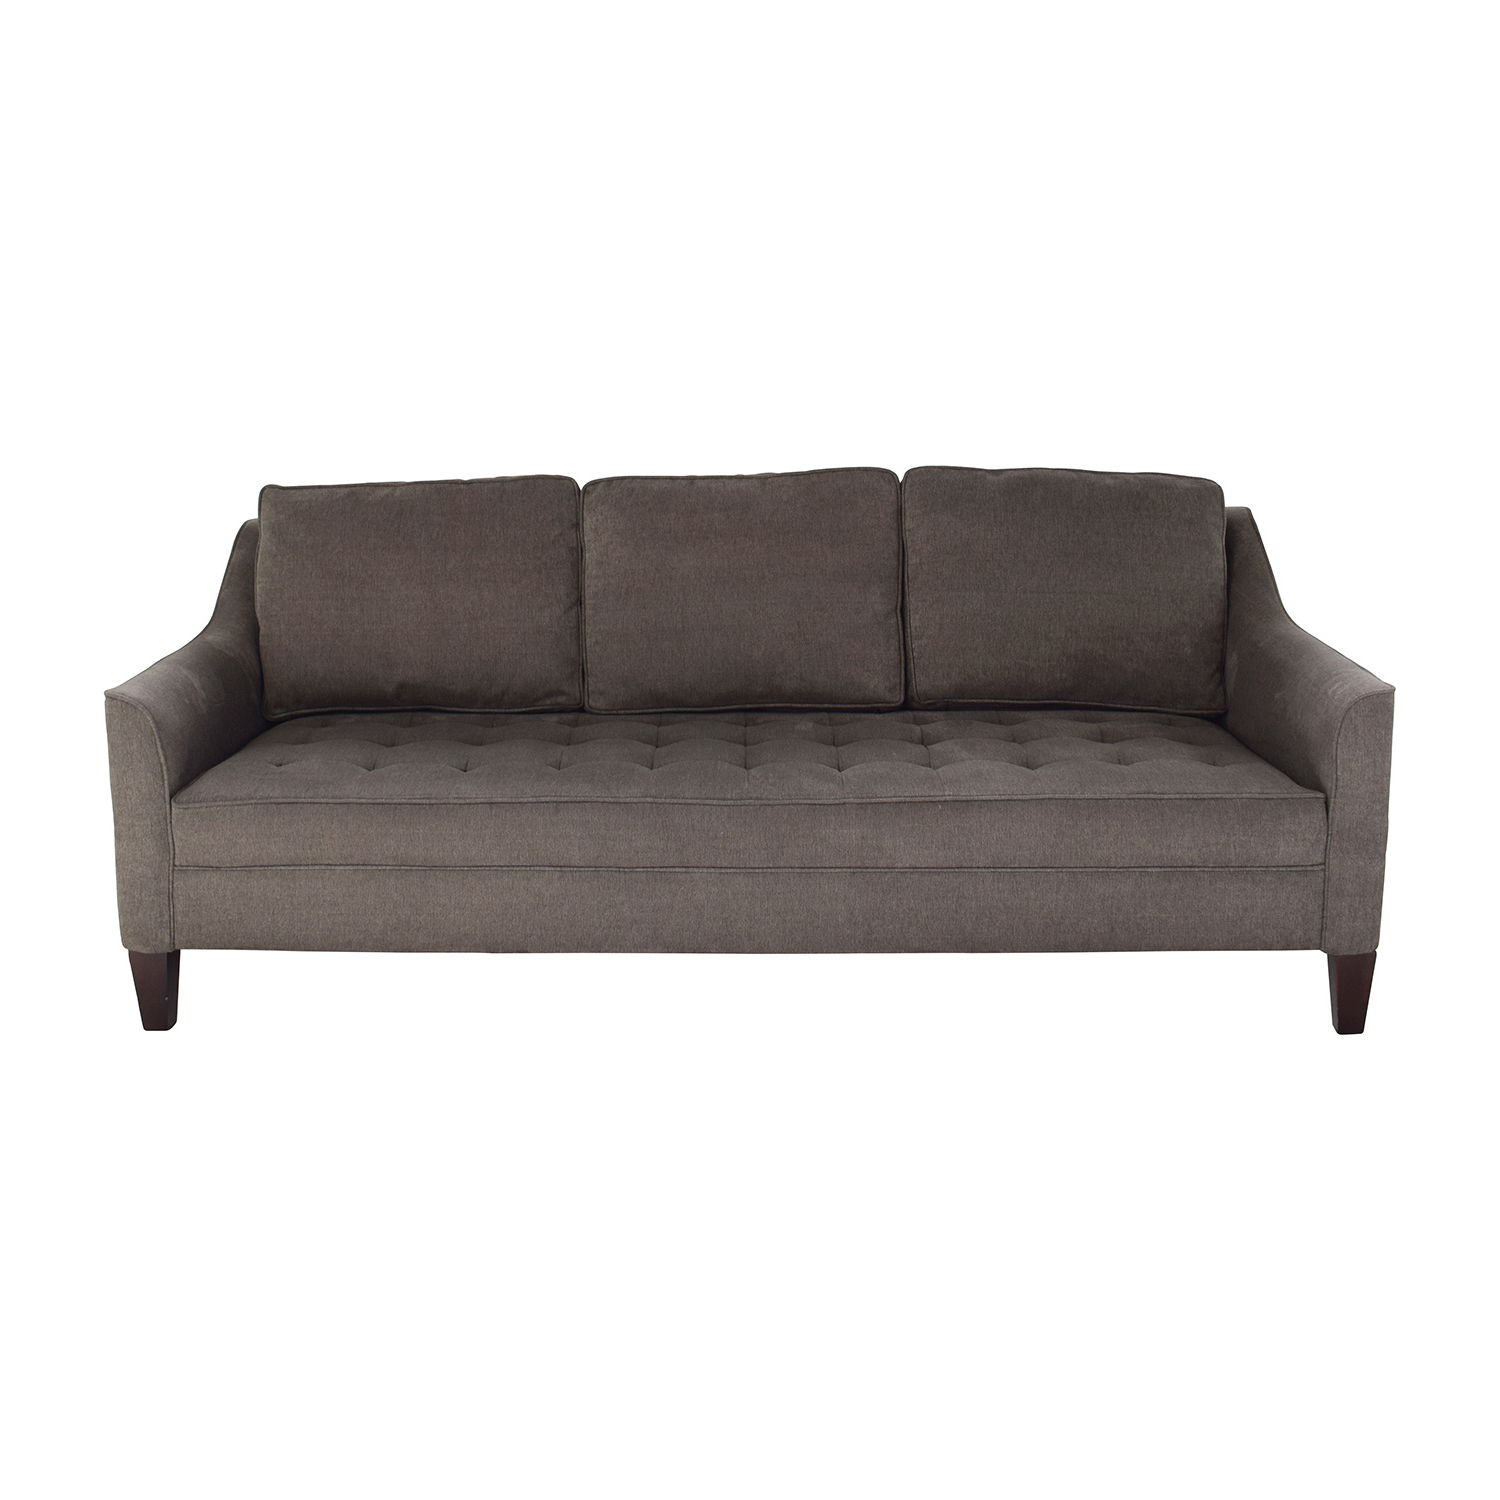 [%51% Off – Haverty's Haverty's Parker Sofa In Grey / Sofas Throughout 2019 Parker Sofa Chairs|Parker Sofa Chairs Intended For Most Current 51% Off – Haverty's Haverty's Parker Sofa In Grey / Sofas|Widely Used Parker Sofa Chairs Throughout 51% Off – Haverty's Haverty's Parker Sofa In Grey / Sofas|Preferred 51% Off – Haverty's Haverty's Parker Sofa In Grey / Sofas Within Parker Sofa Chairs%] (View 1 of 20)